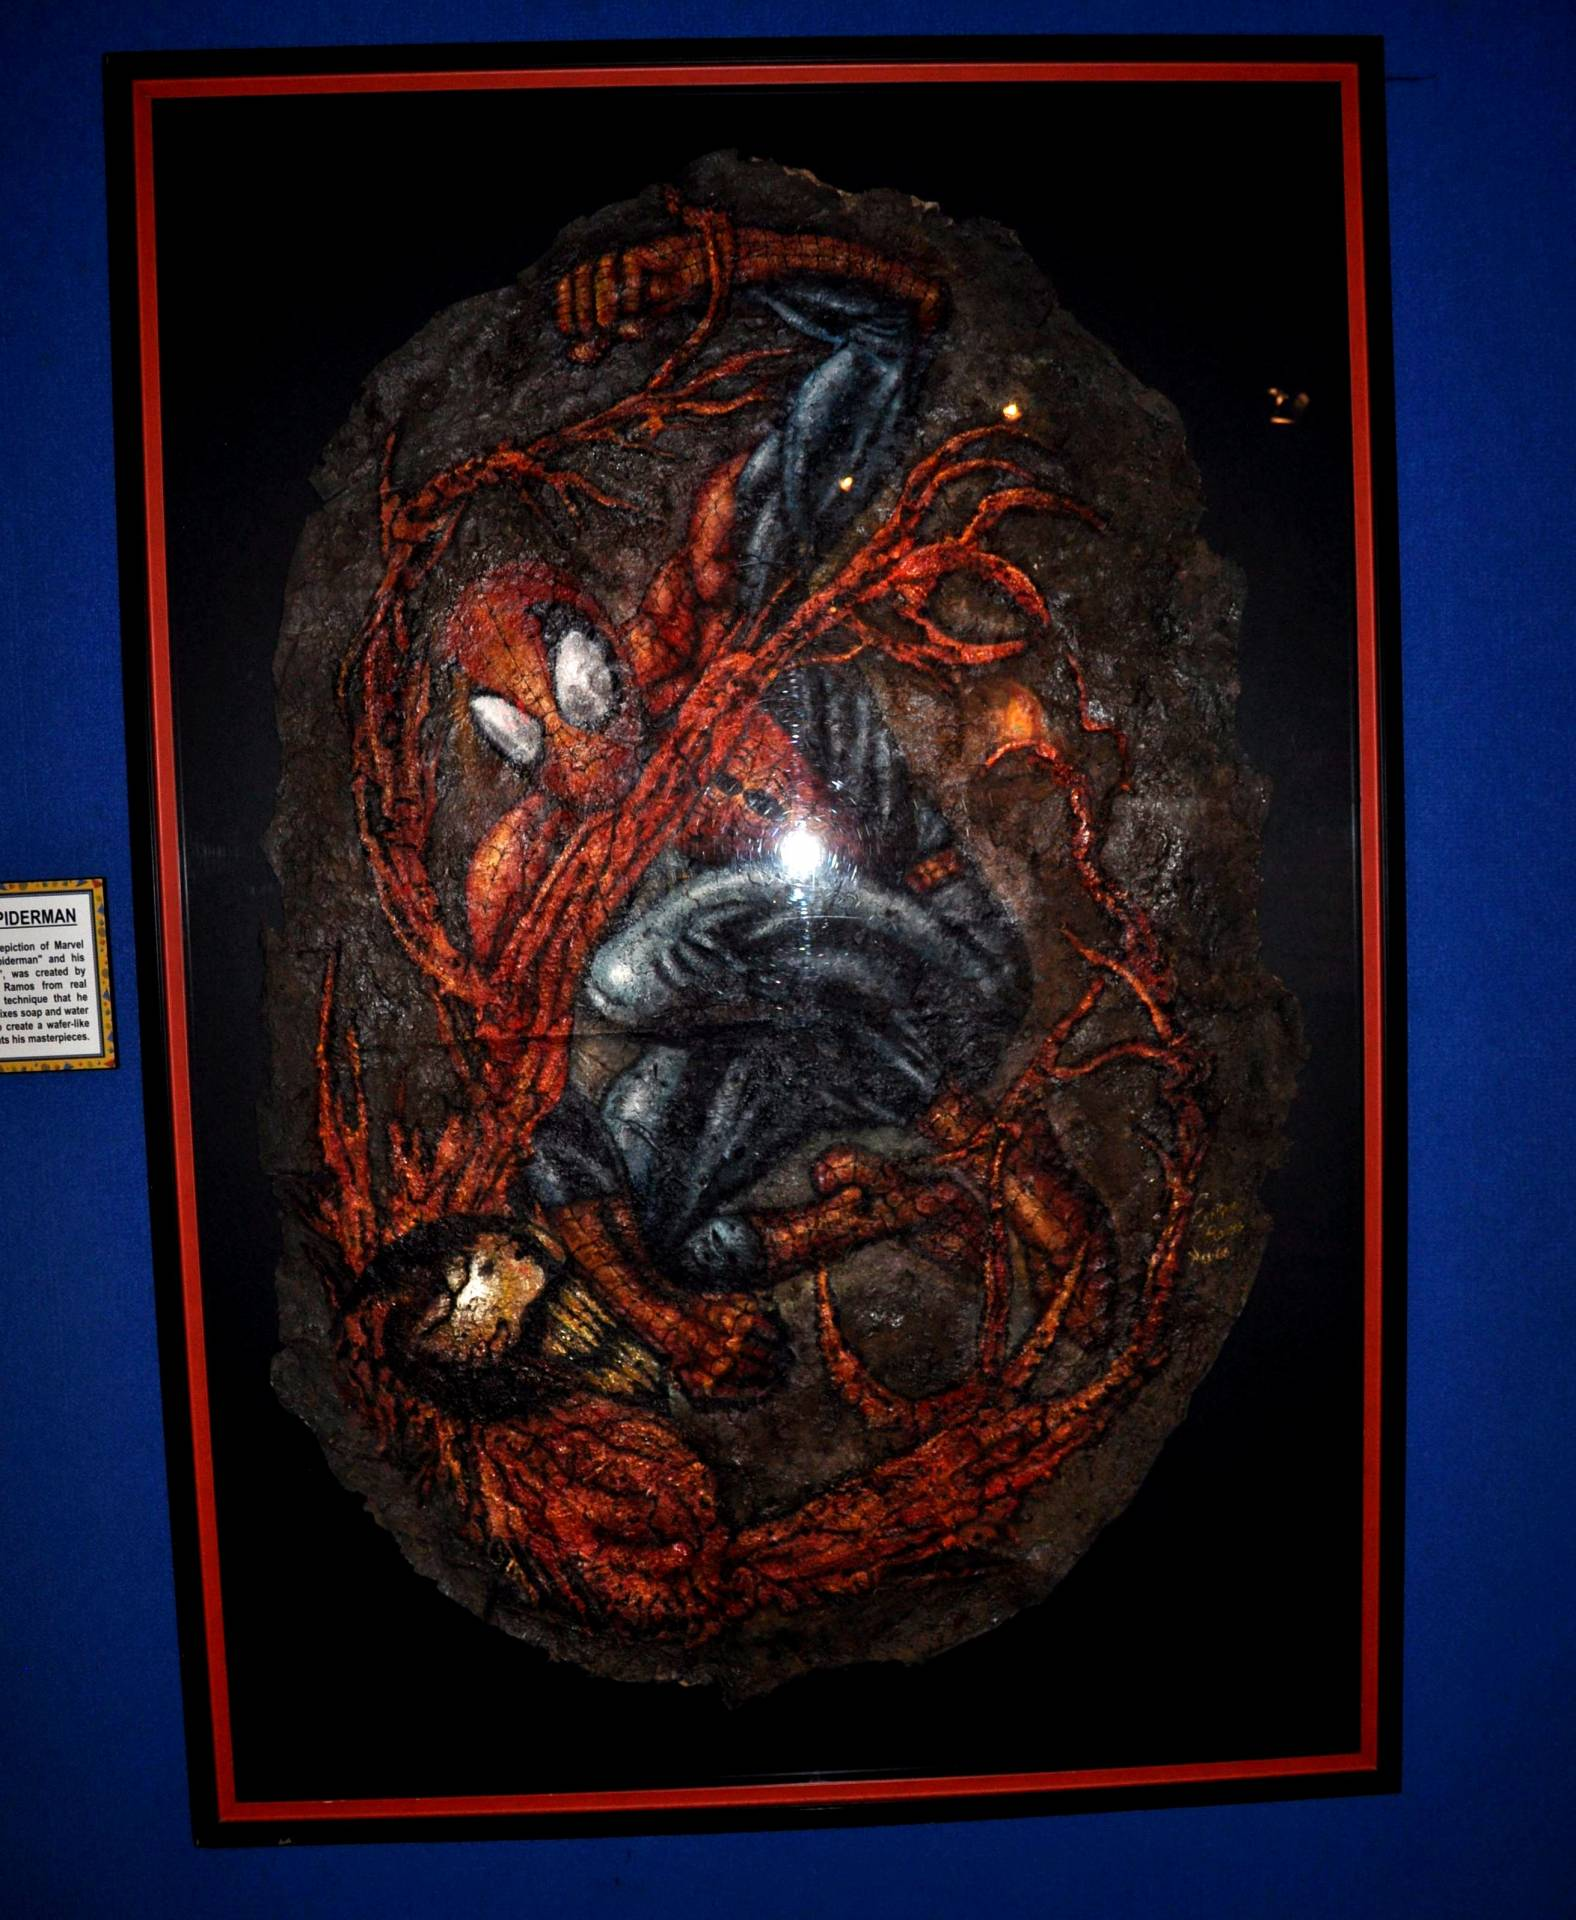 Spider-Man Vs Carnage - A Spider-Web made painting!